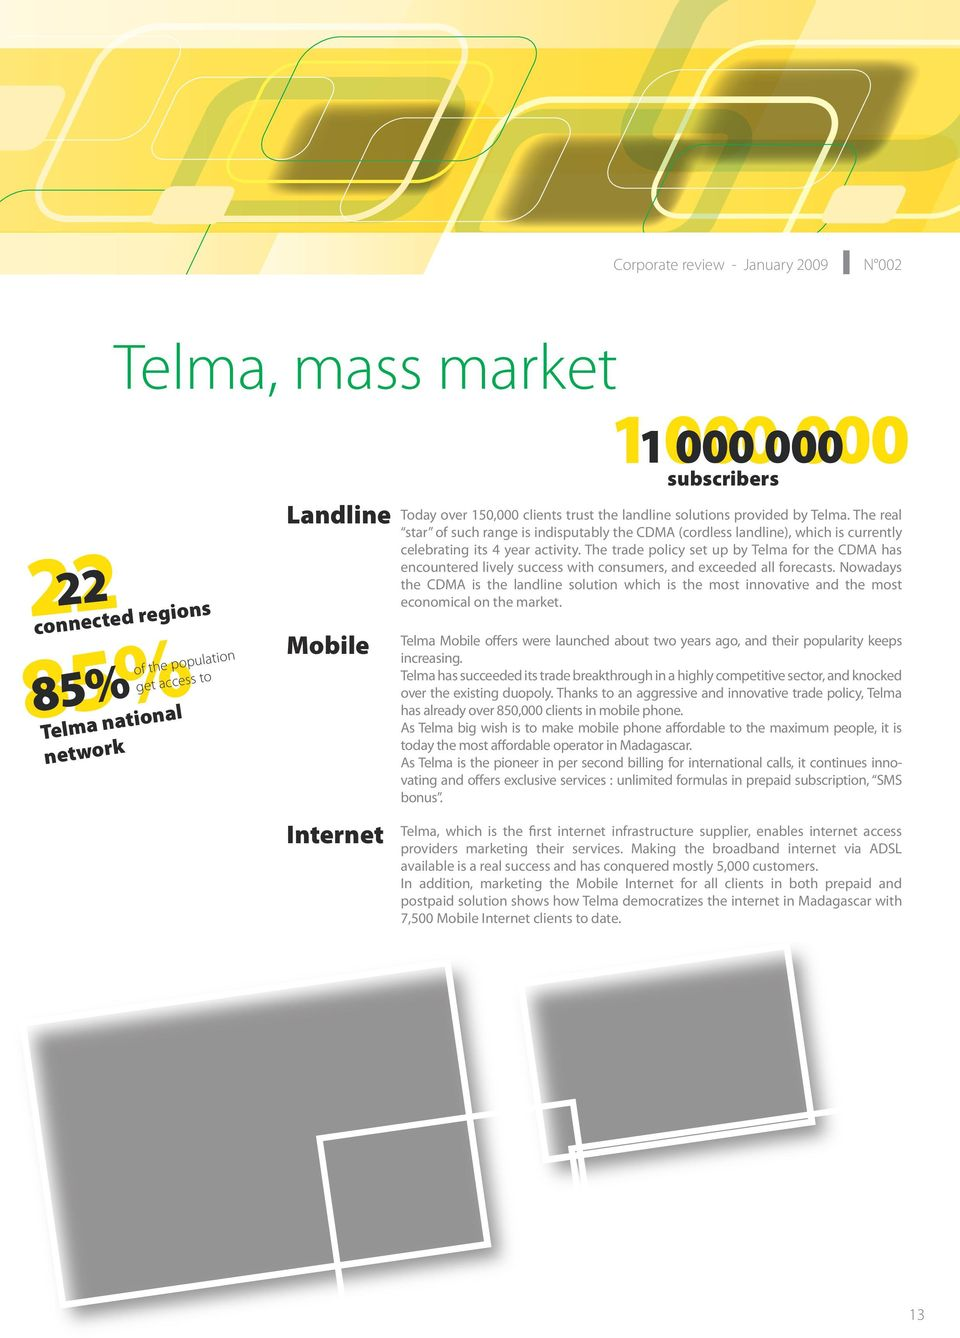 The trade policy set up by Telma for the CDMA has encountered lively success with consumers, and exceeded all forecasts.